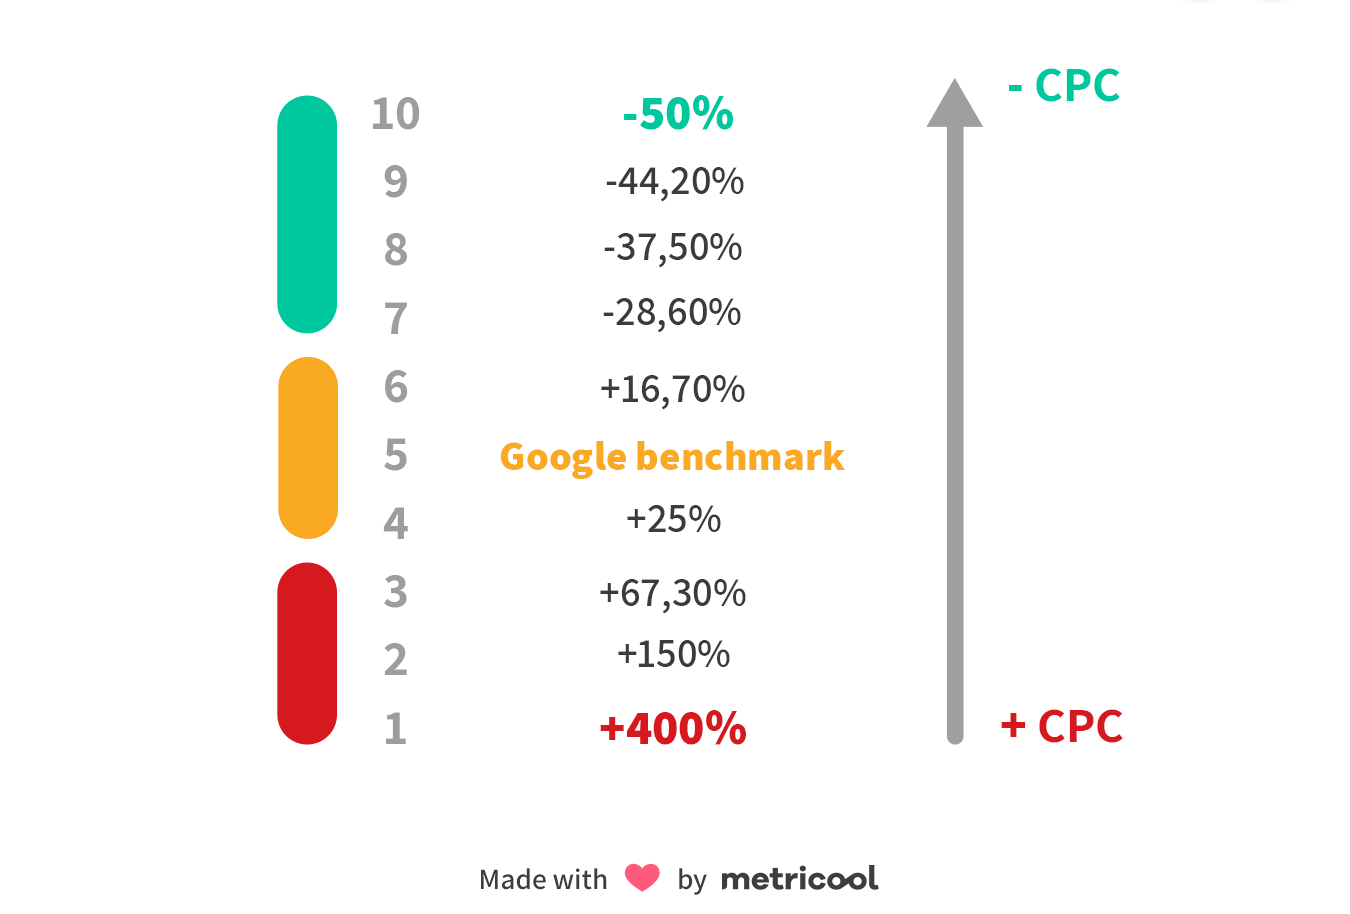 How Quality Score Affects CPC?